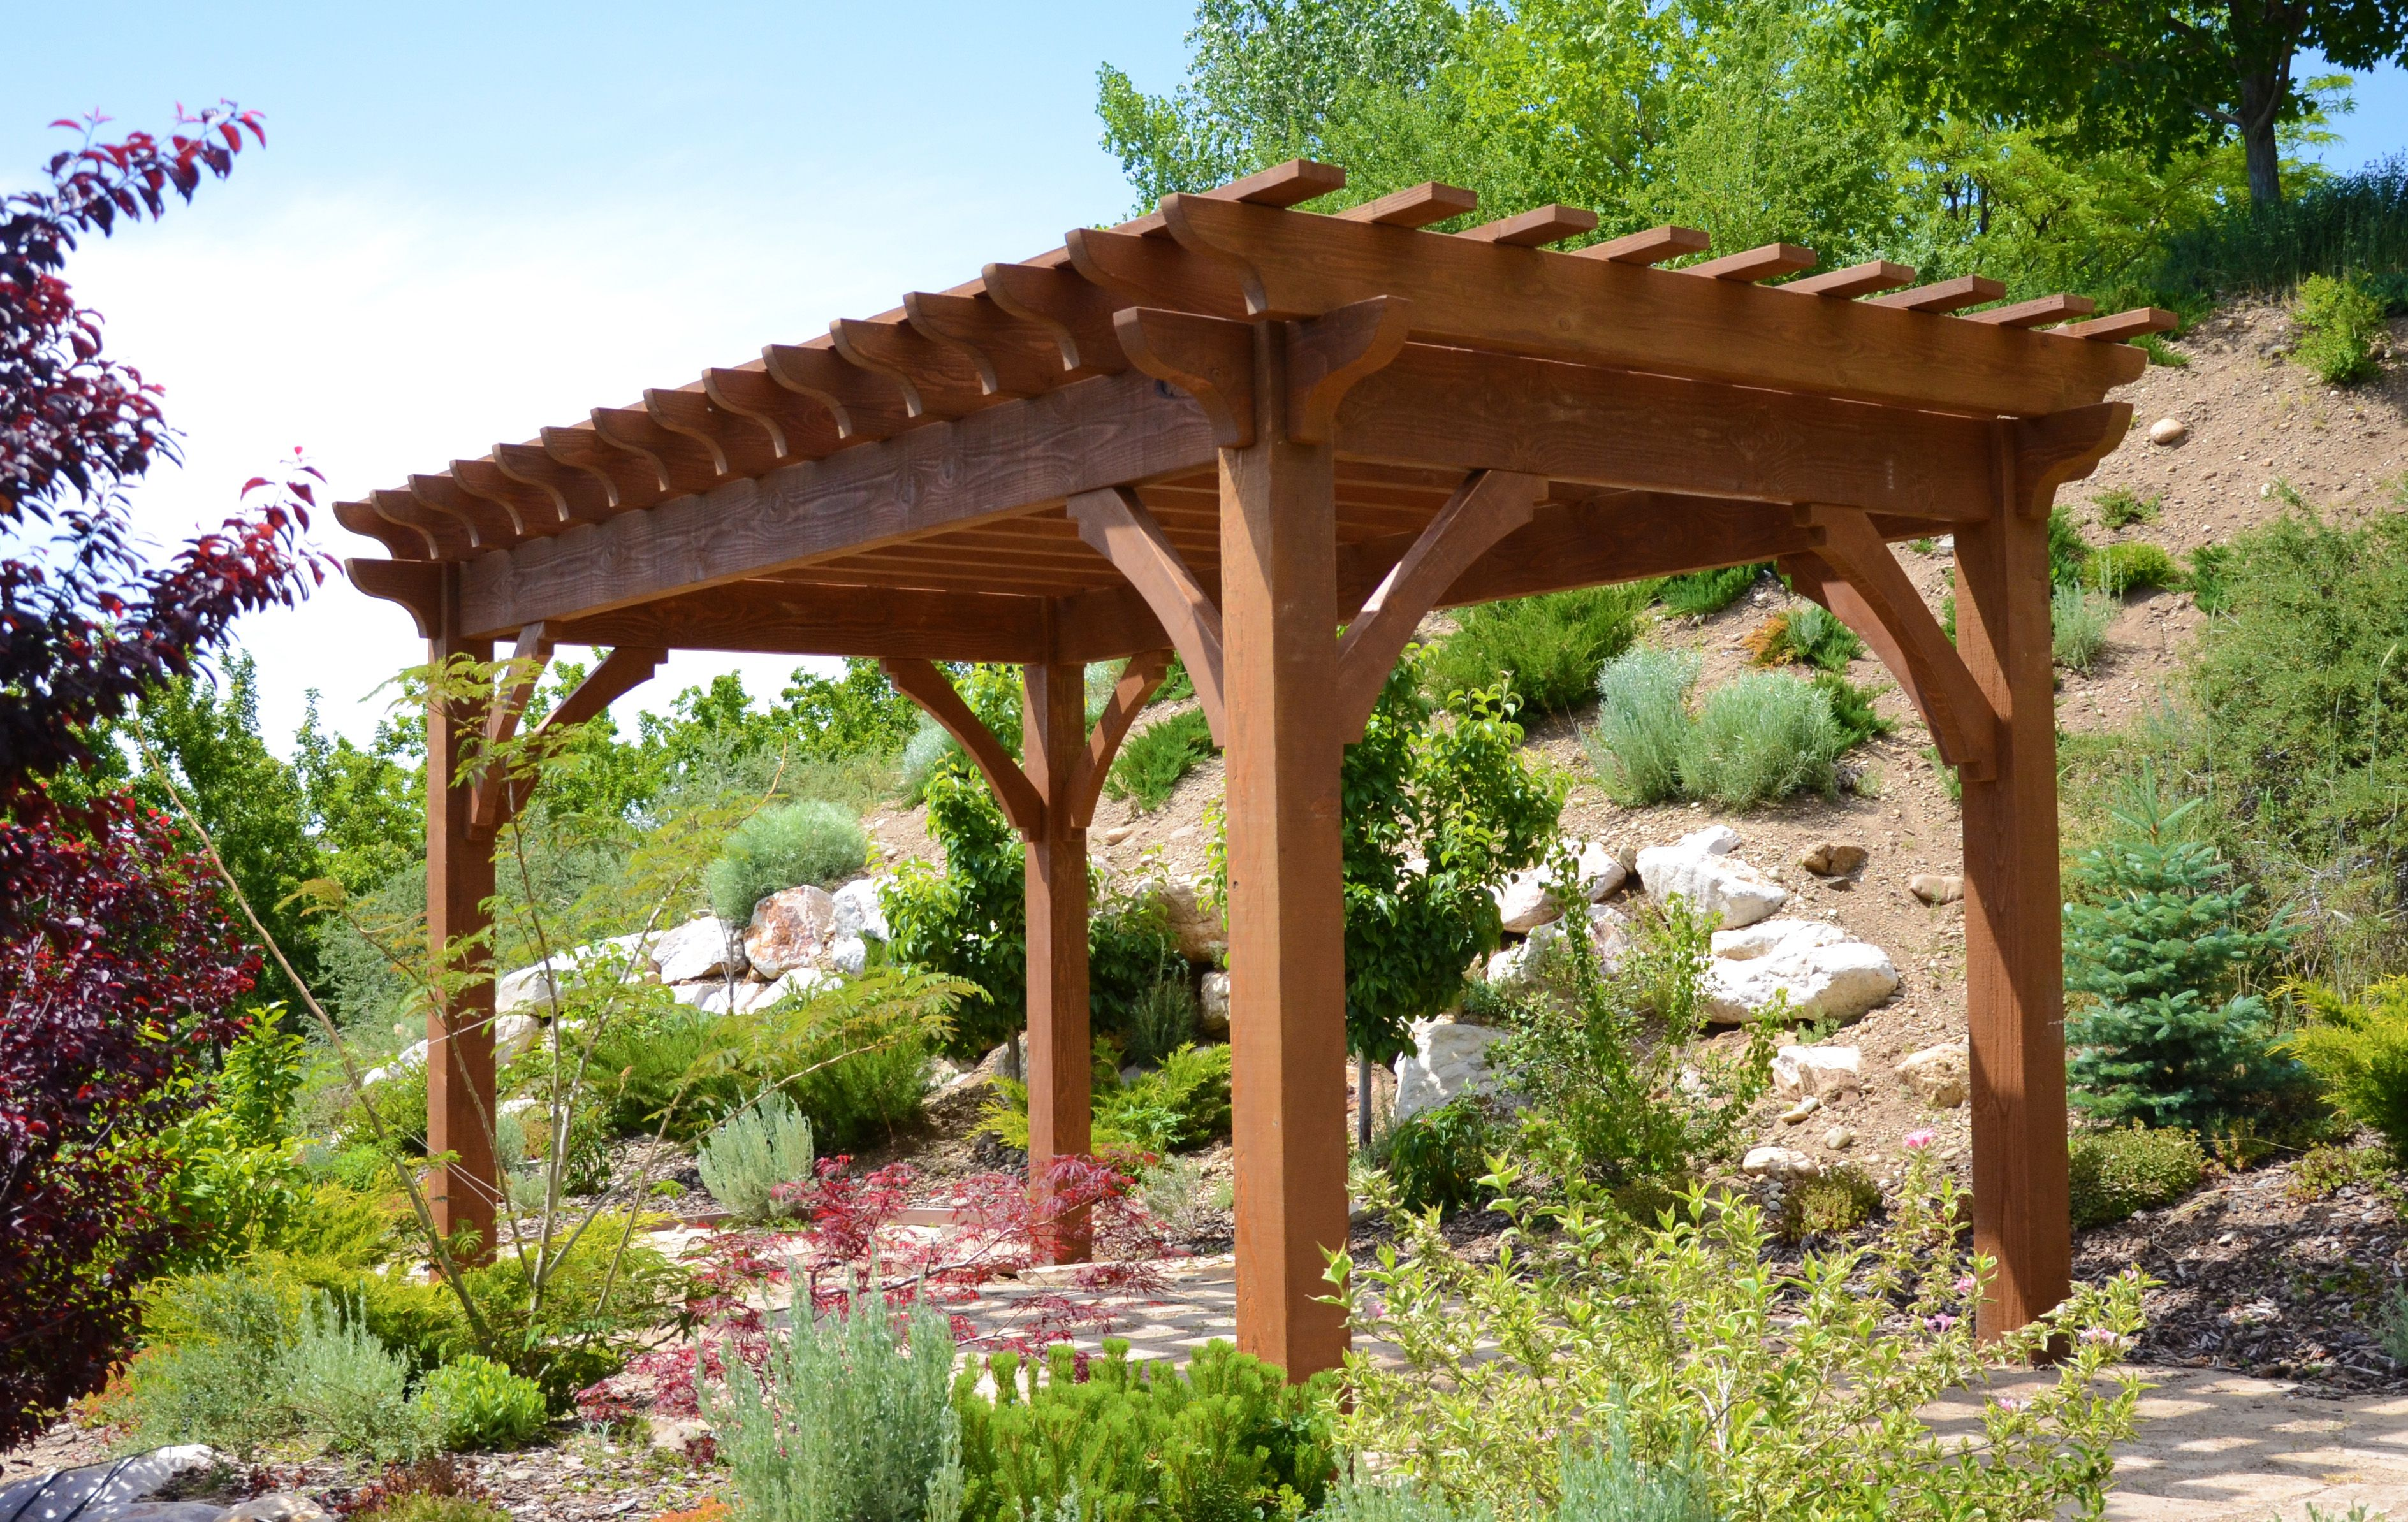 The 4-Beam Free-Standing Pergola Kit is a solidly built kit